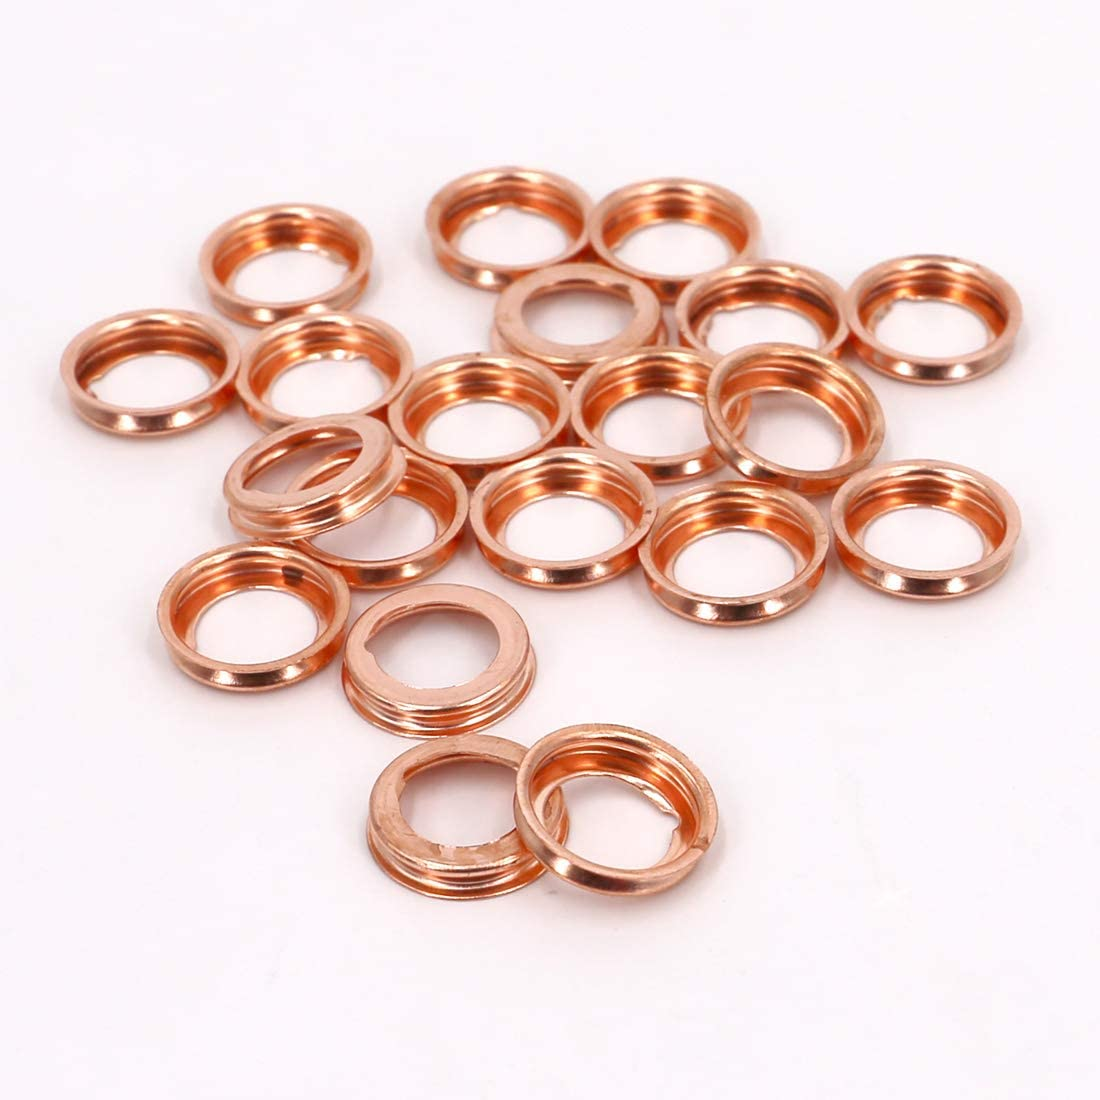 Clipsandfasteners Inc 10 Copper Oil Drain Plug Gaskets Compatible with Ford F4XY-6734-A and Nissan 11026-01M02